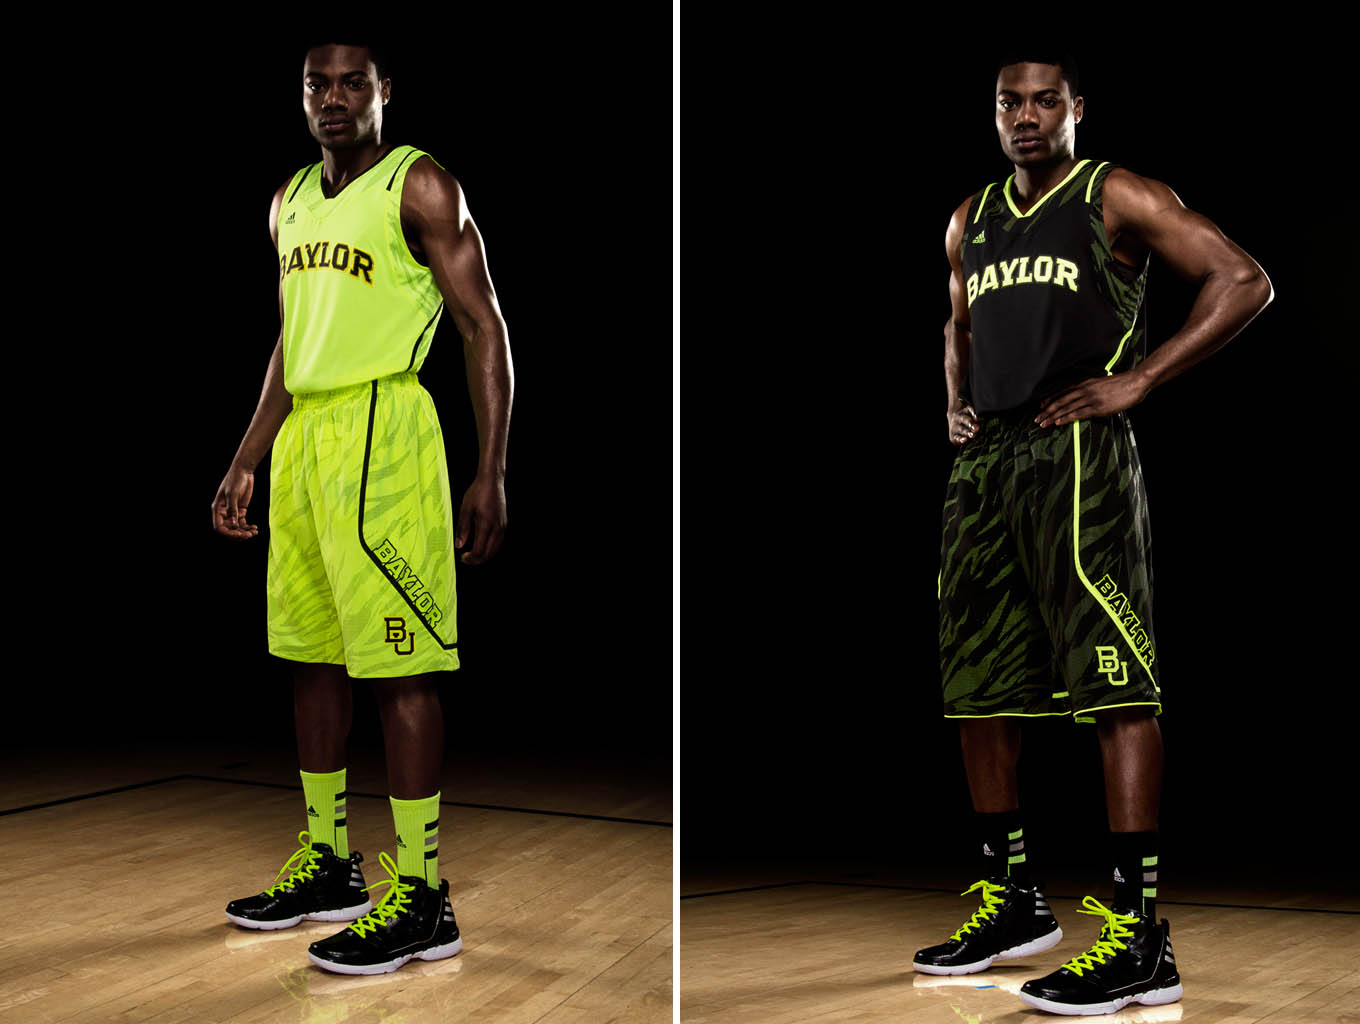 adidas adiZero Uniforms Baylor Bears Home & Away